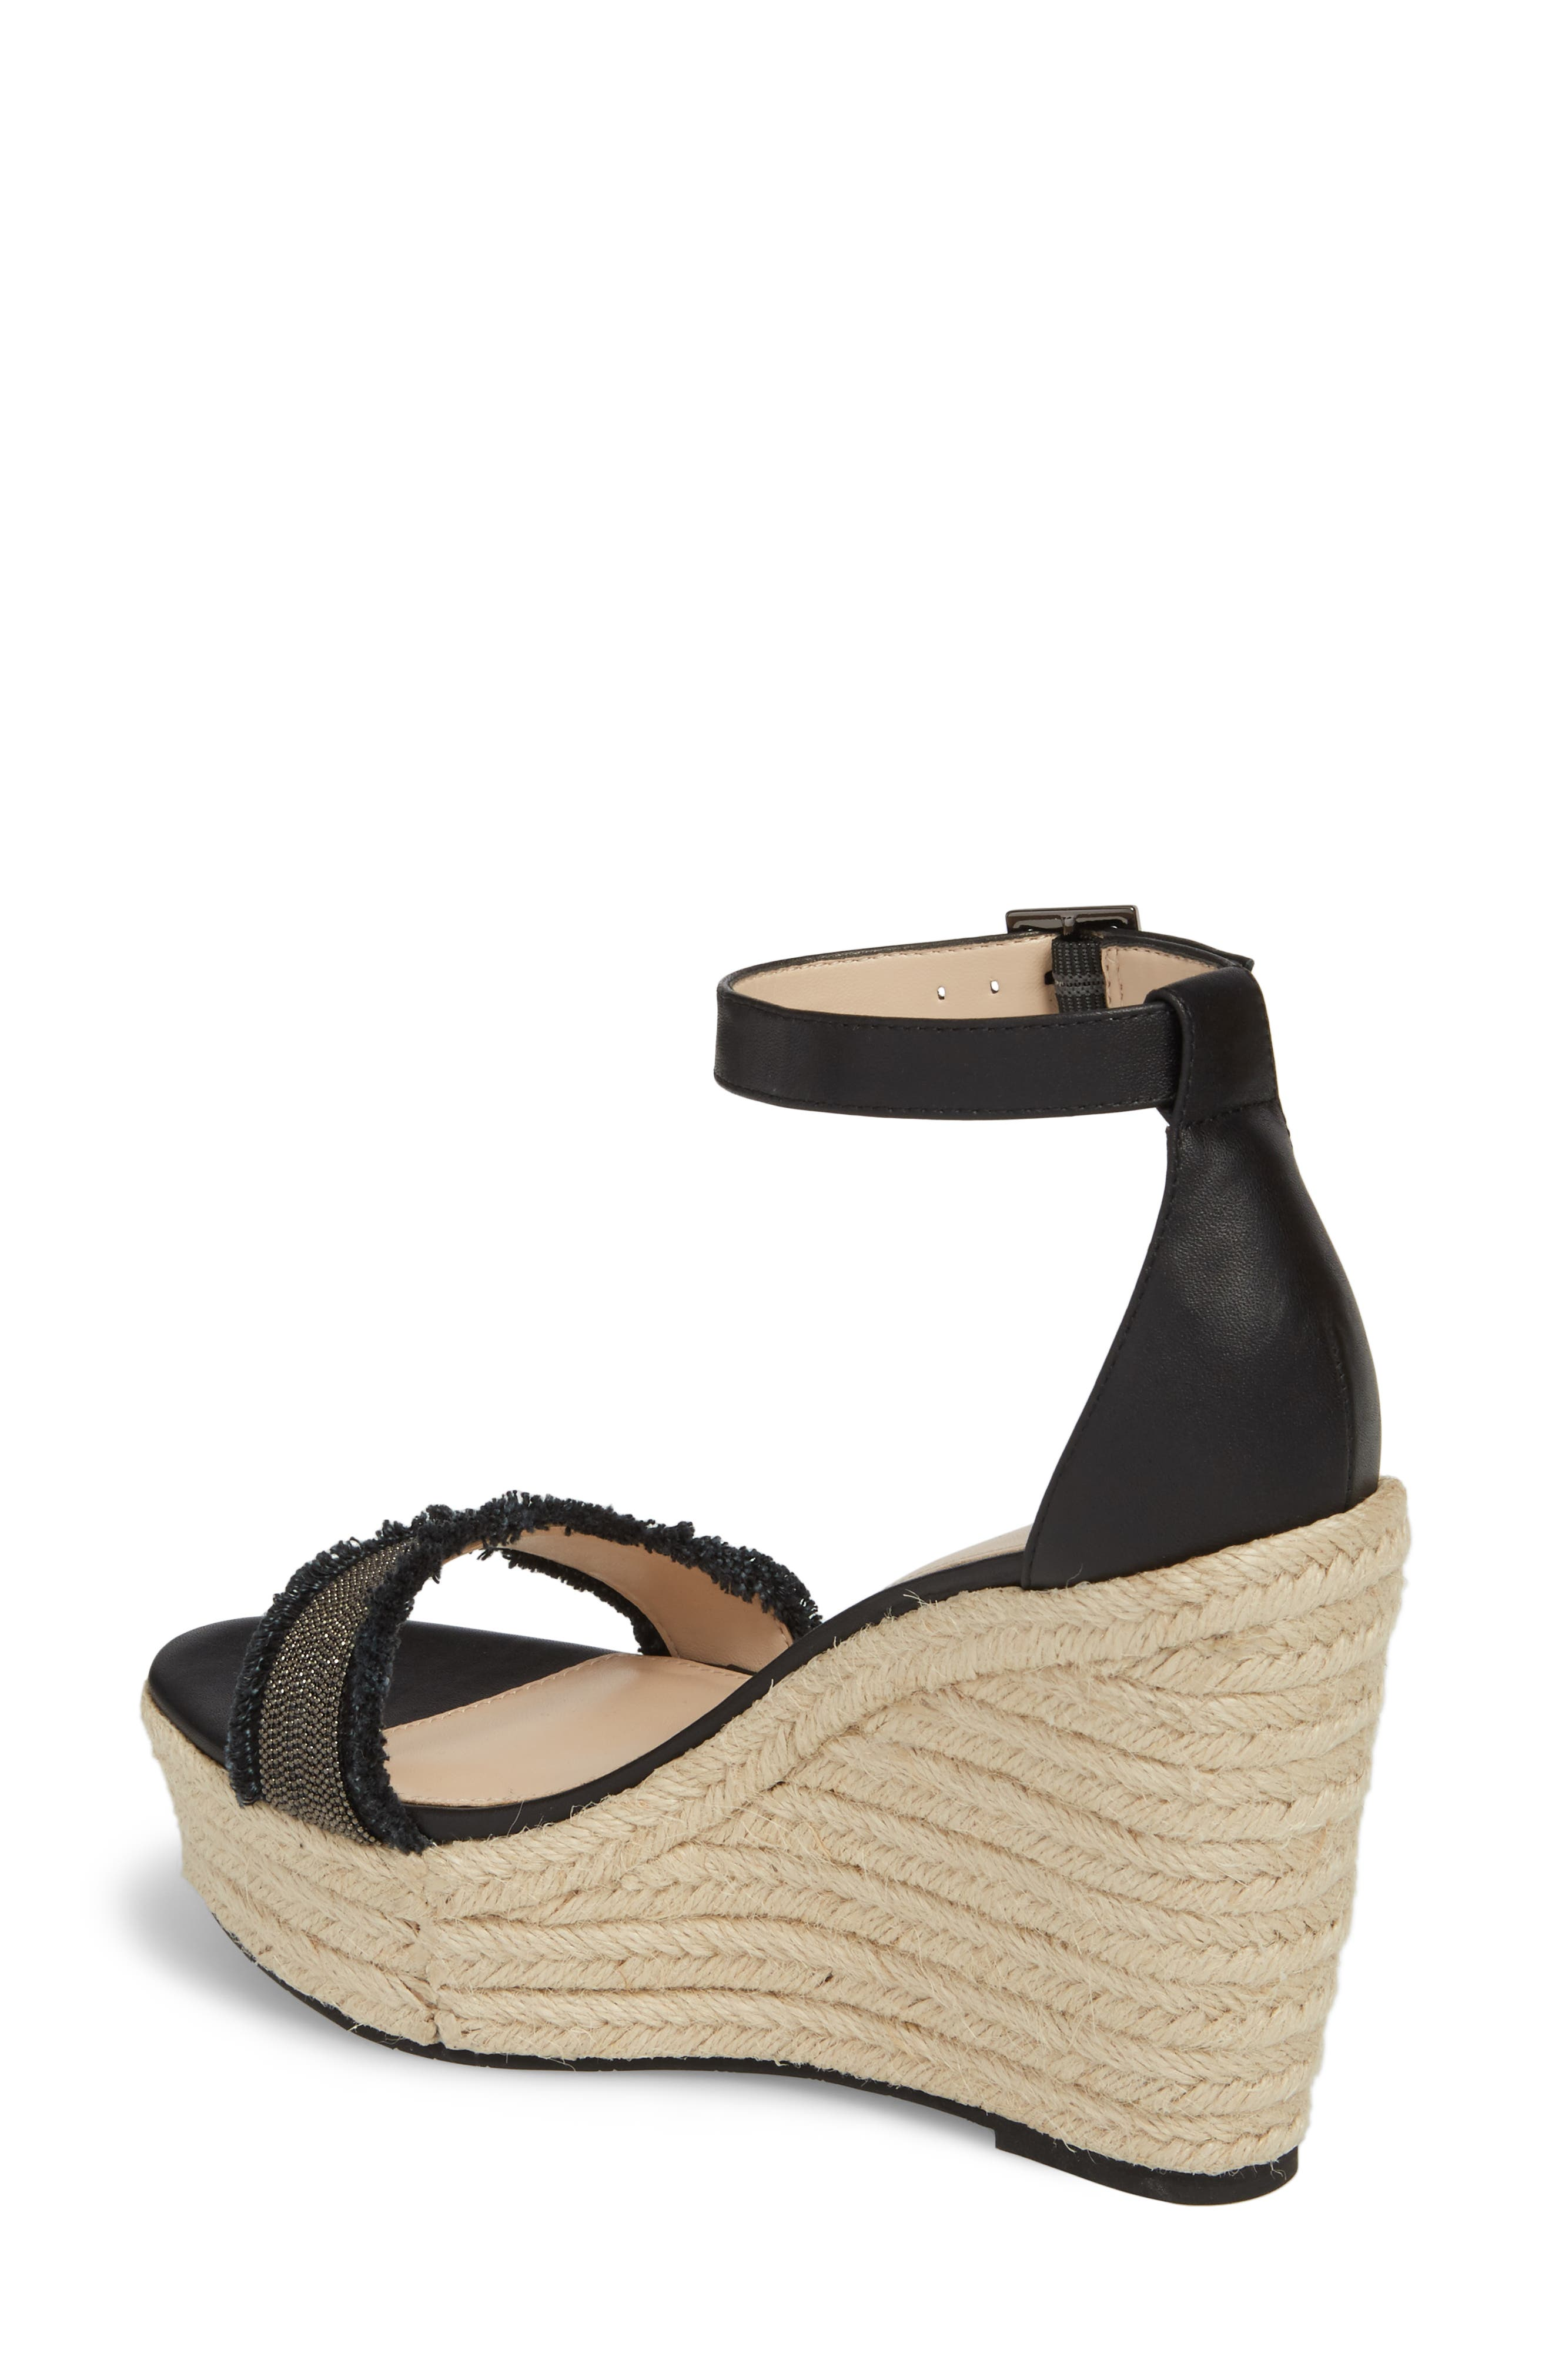 Radley Espadrille Wedge Sandal,                             Alternate thumbnail 2, color,                             BLACK LEATHER